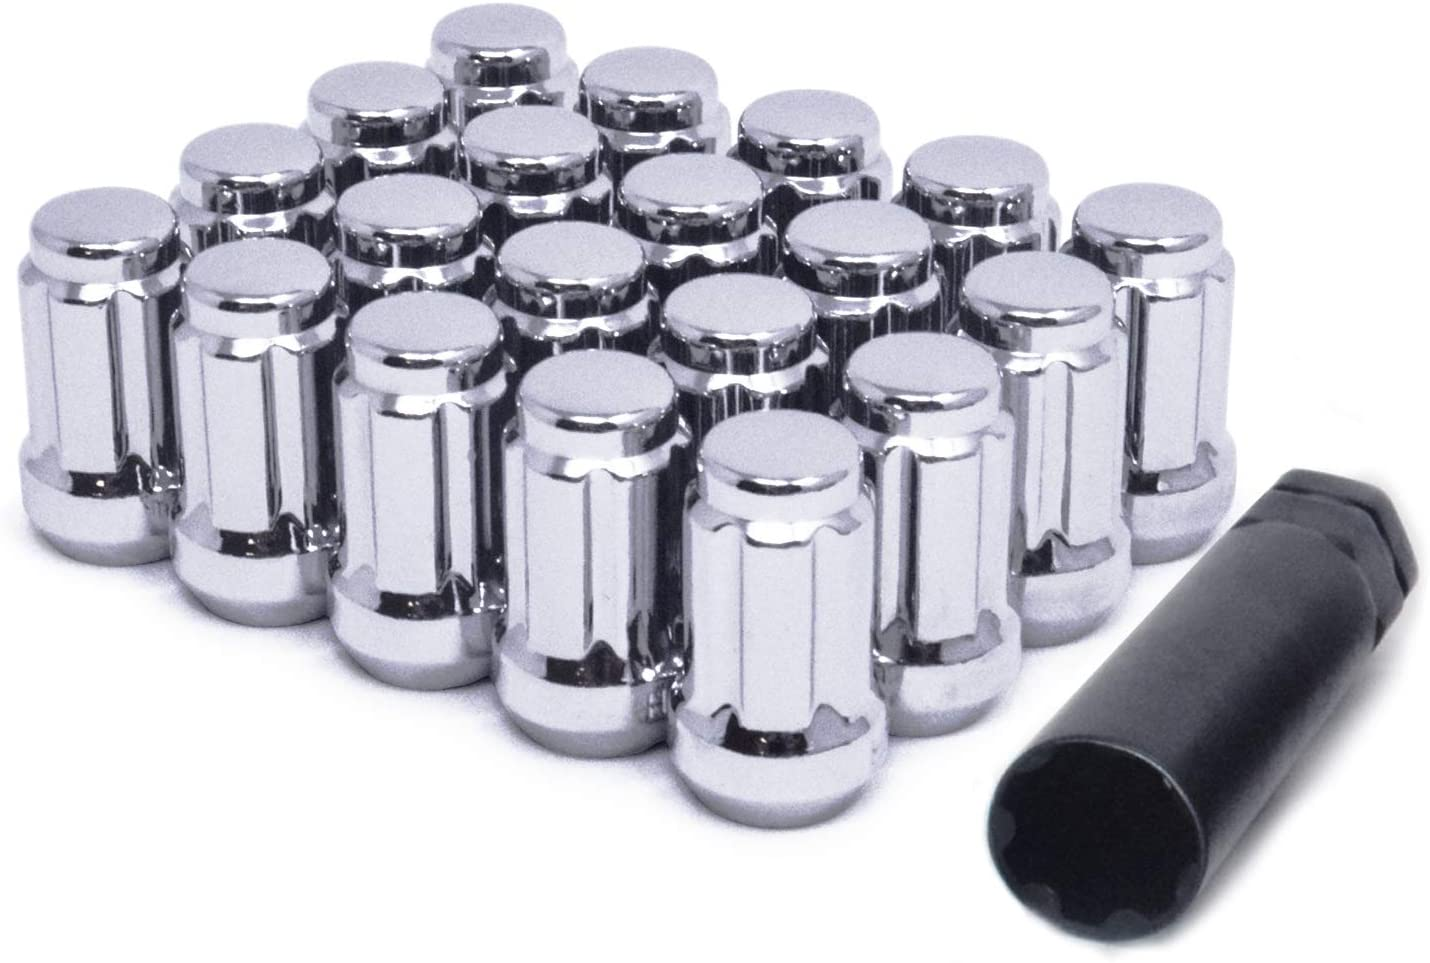 WHEEL CONNECT Spline Lug Bolts,12x1.5,Acorn for Conical Seat Chrome Finish.M12 X 1.50. Steel for Aftermarket Custom Tuner Wheel Set of 20 with 1 Key and 1 Storage Bag